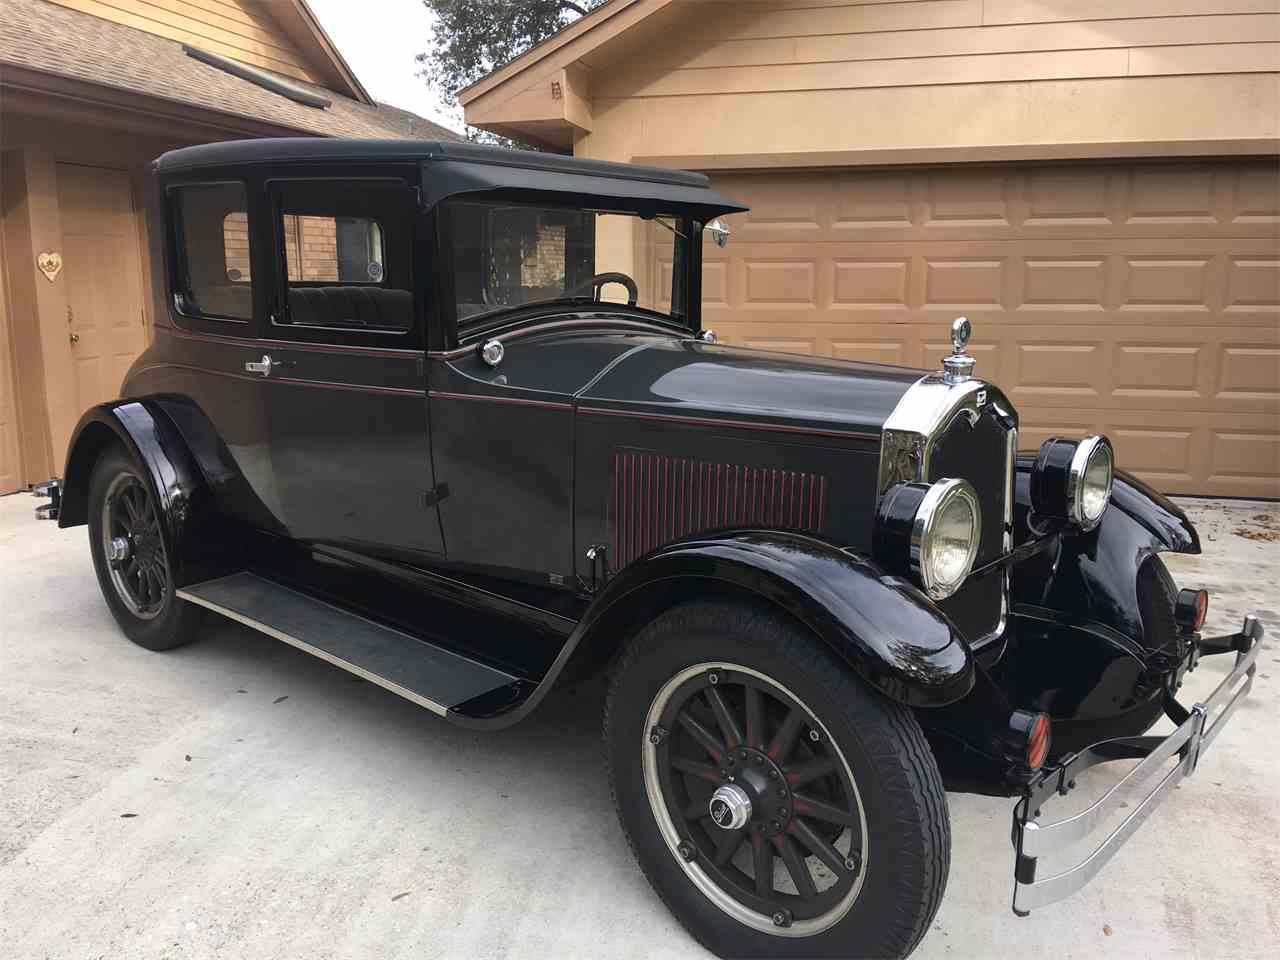 1926 Buick Opera Coupe For Sale Classiccars Com Cc 779779